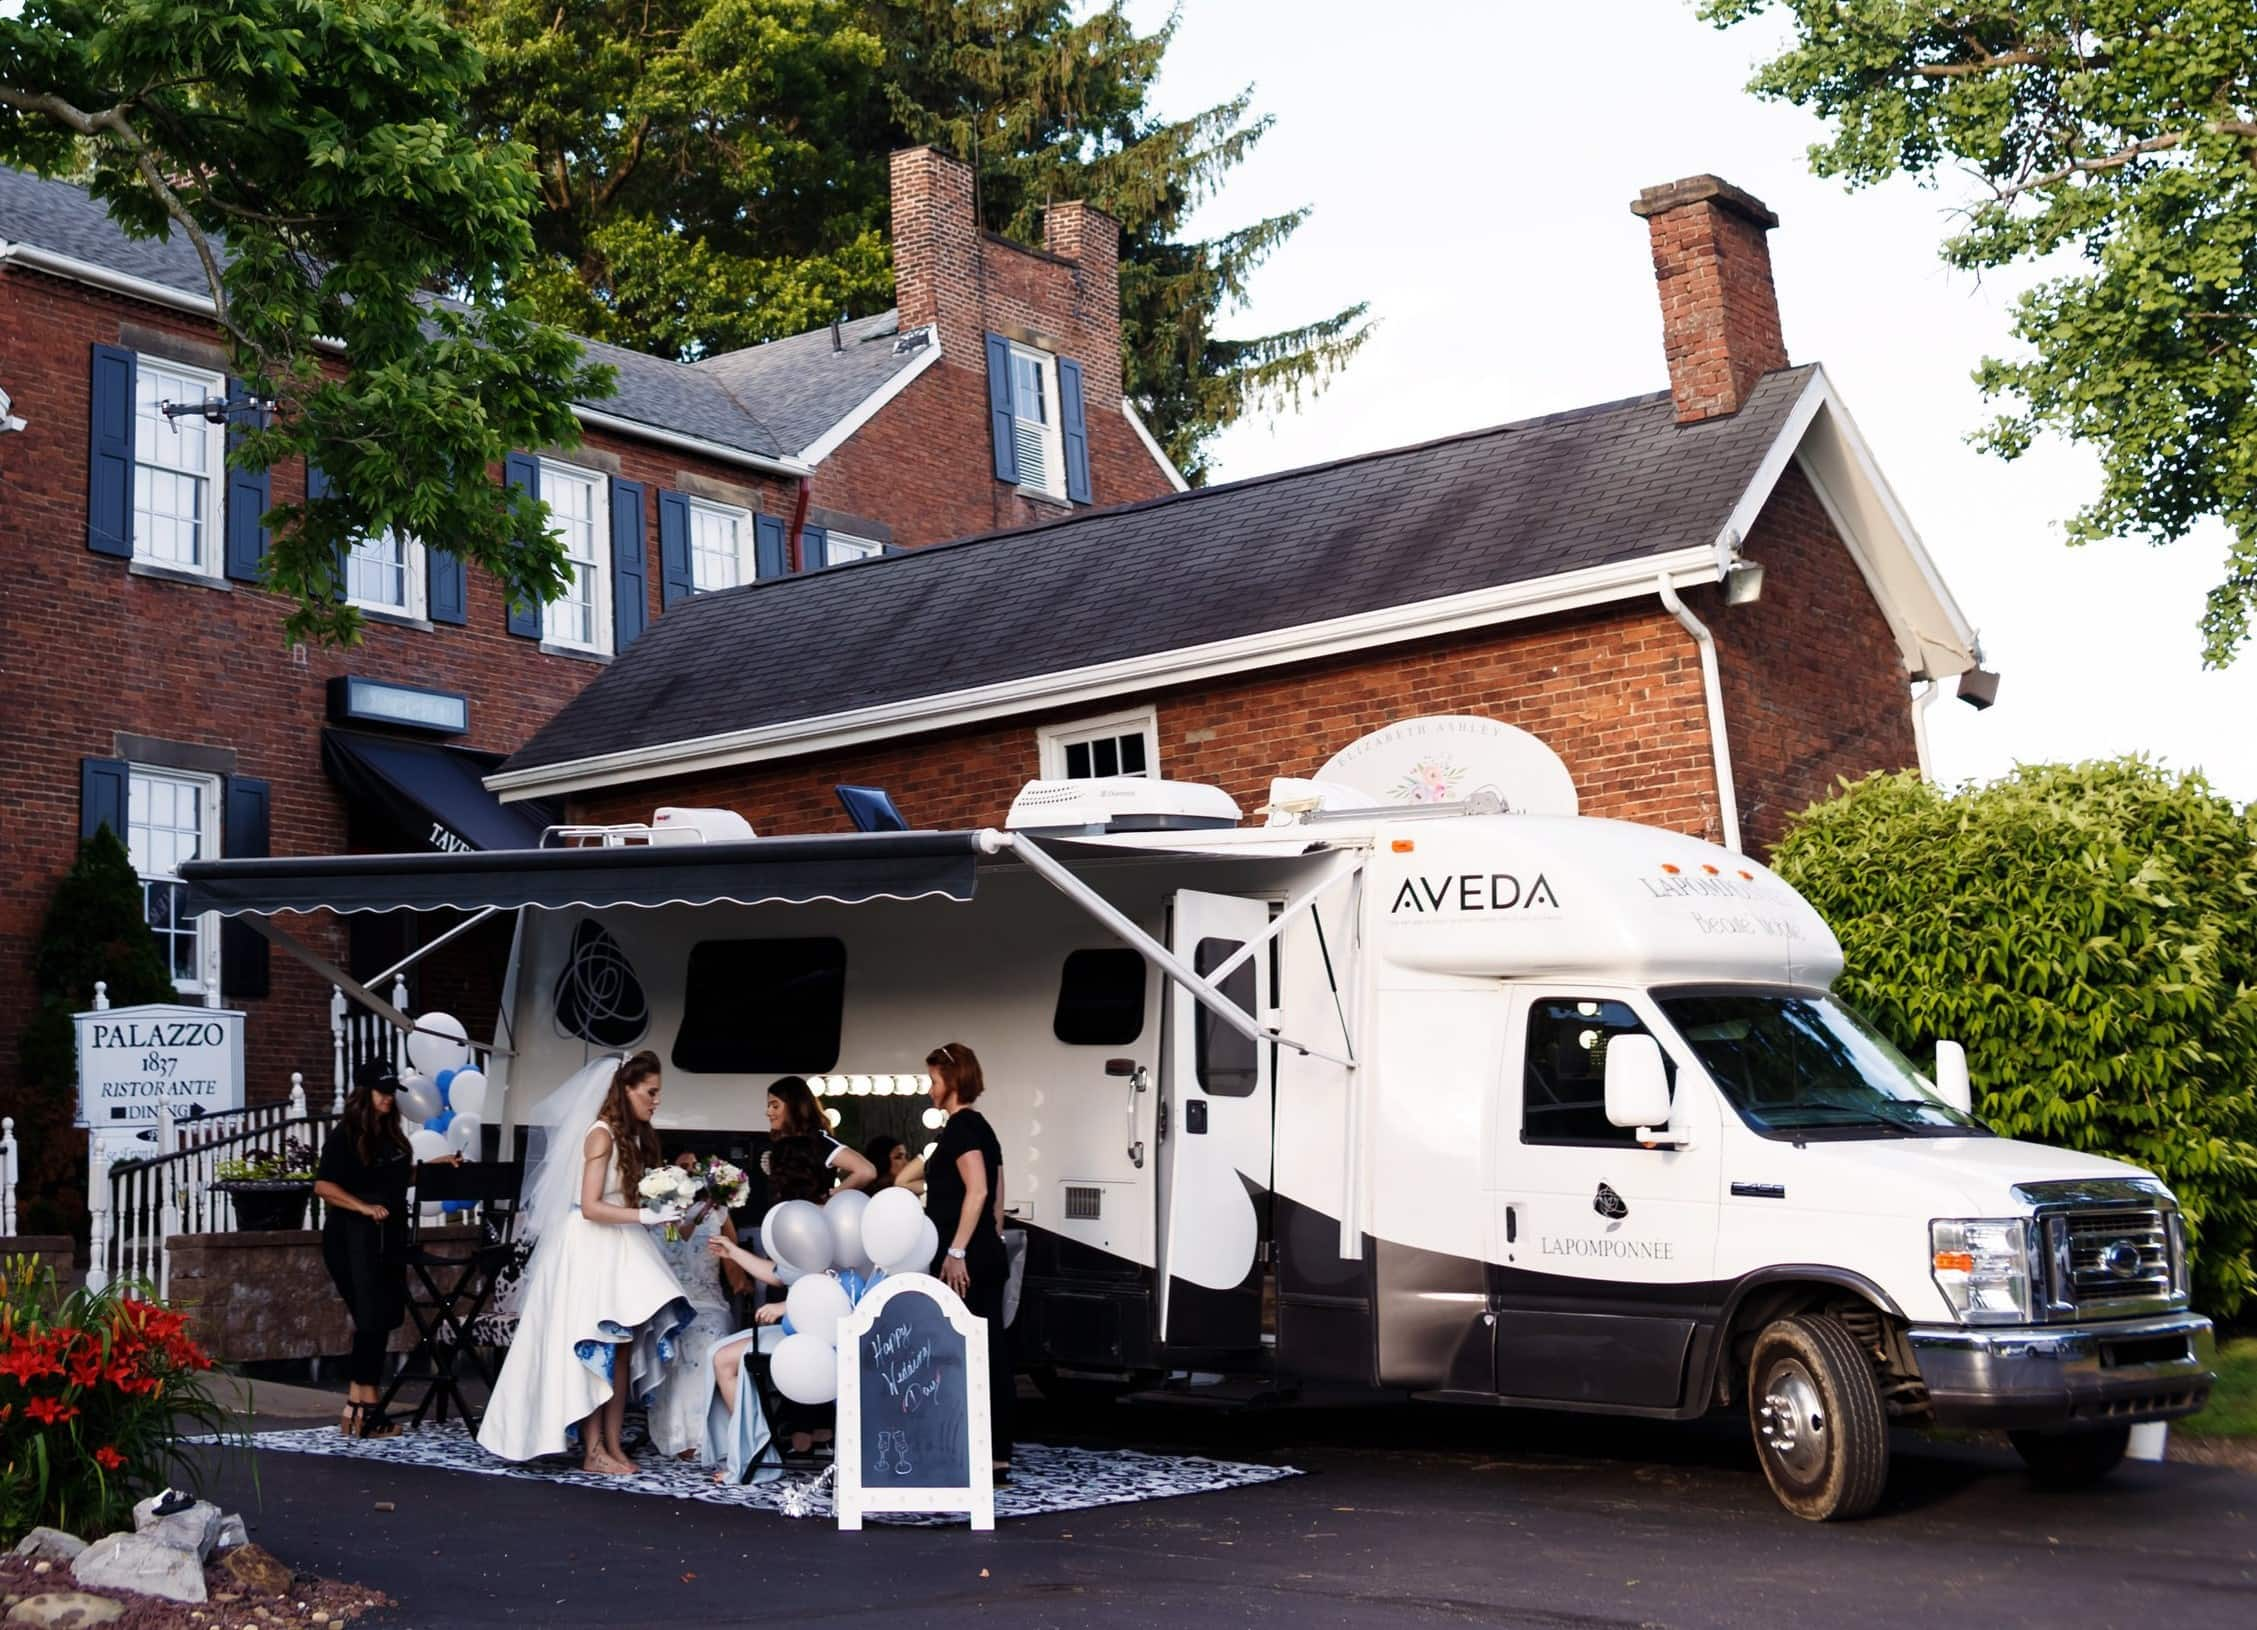 The Beauté Mobile: Introducing Our Newest Experience